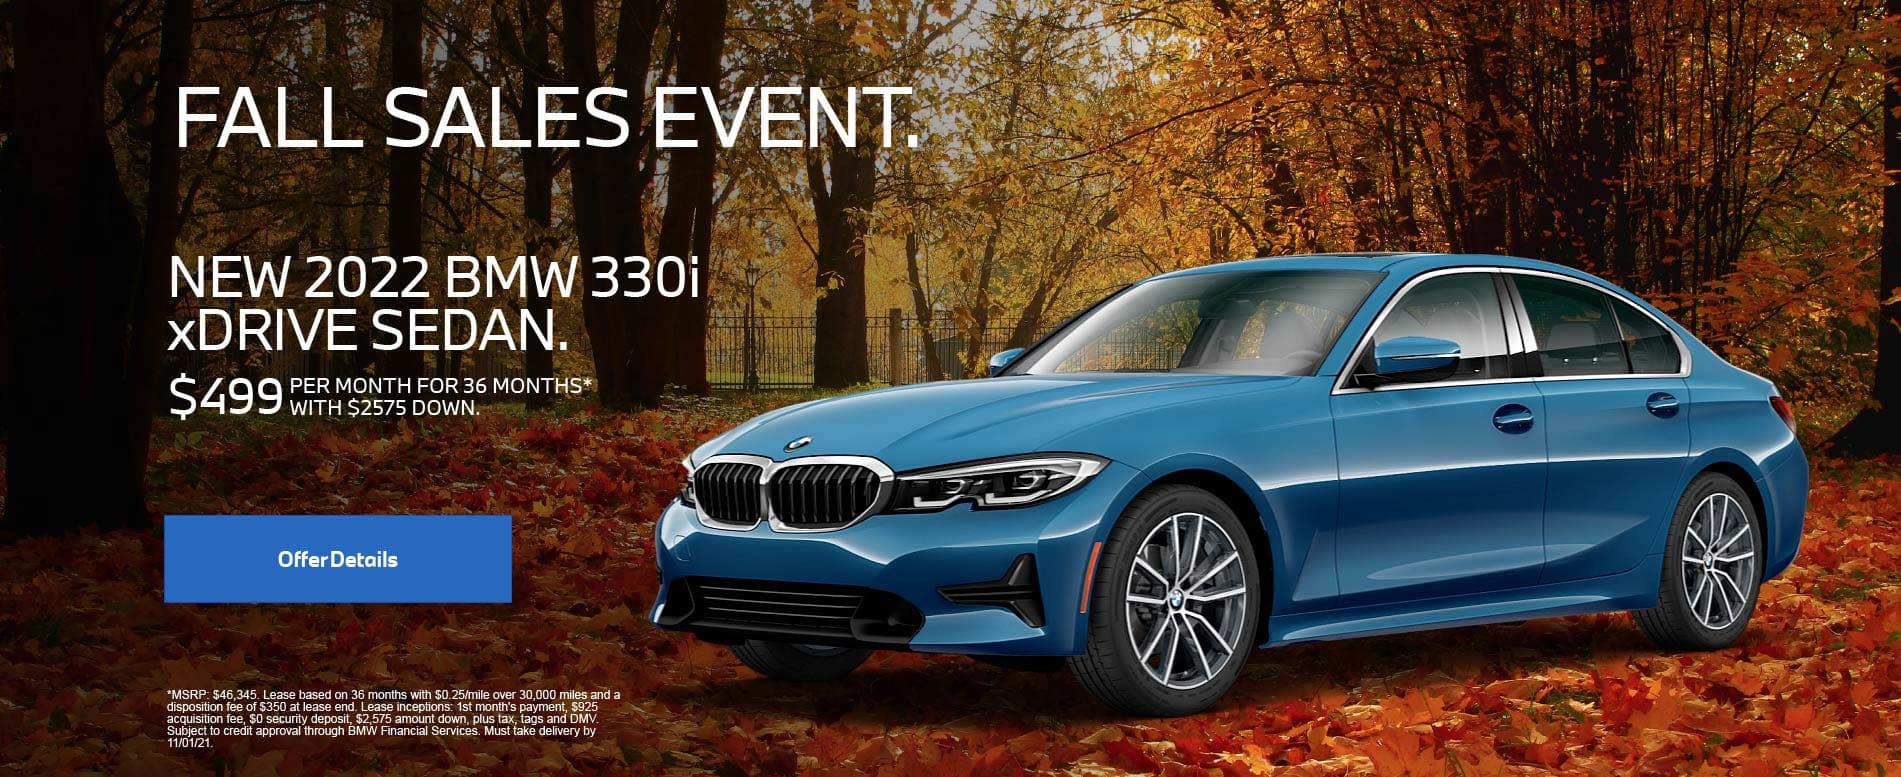 Fall Sales Event. New 2022 BMW 330i xDRIVE Sedan. $499 Per Month for 36 months with $2575 down.